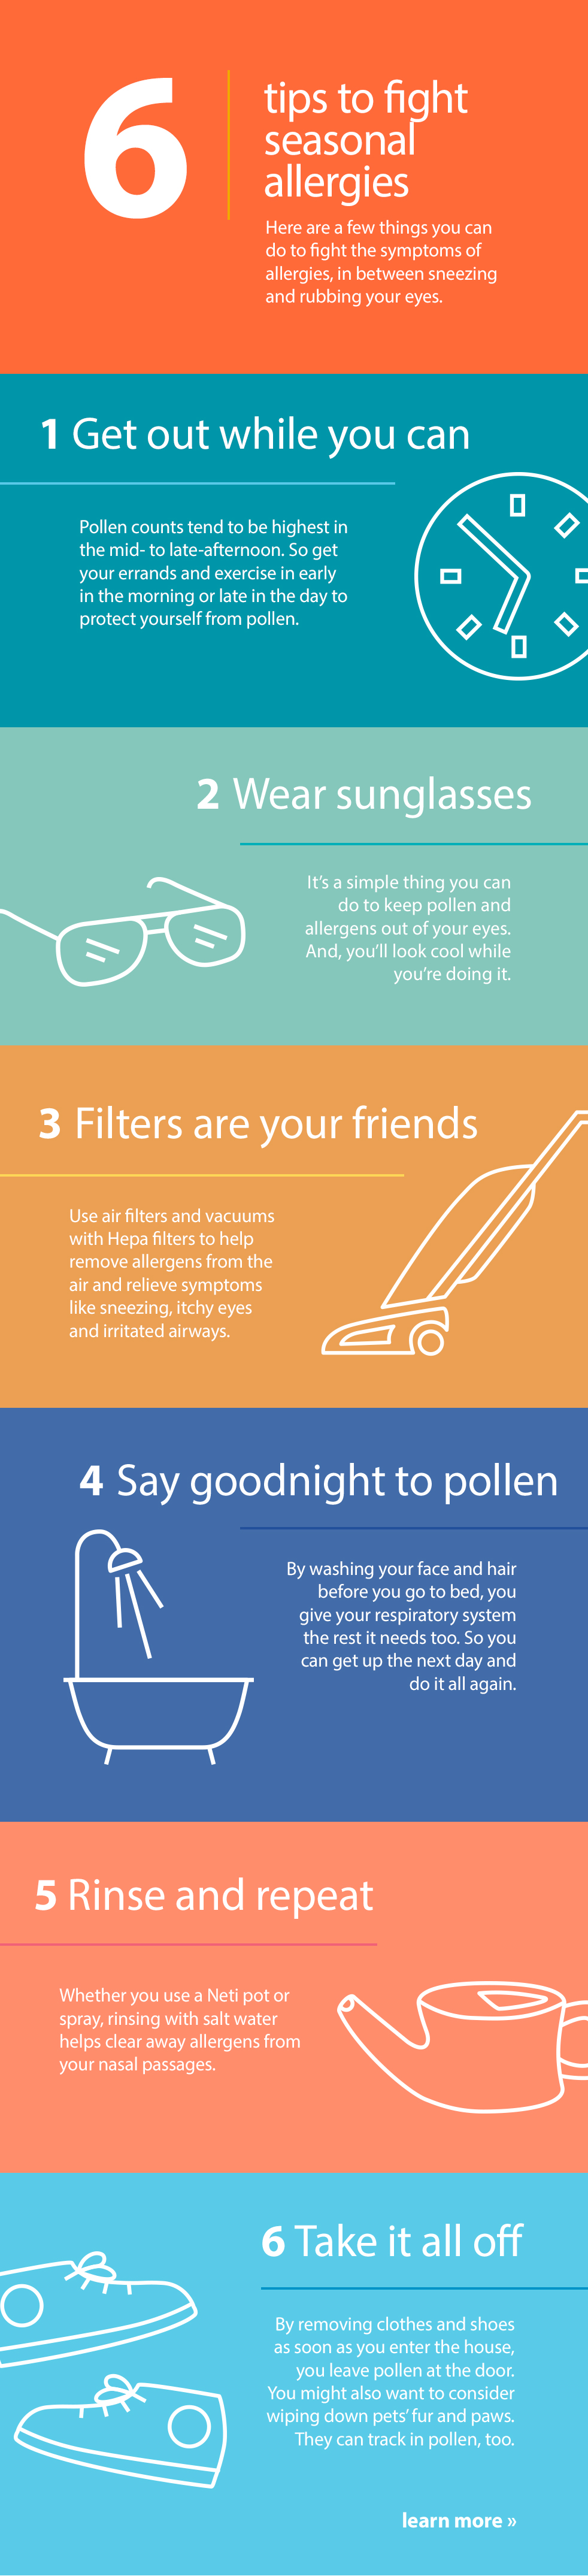 6 tips to fight seasonal allergies - Infographic